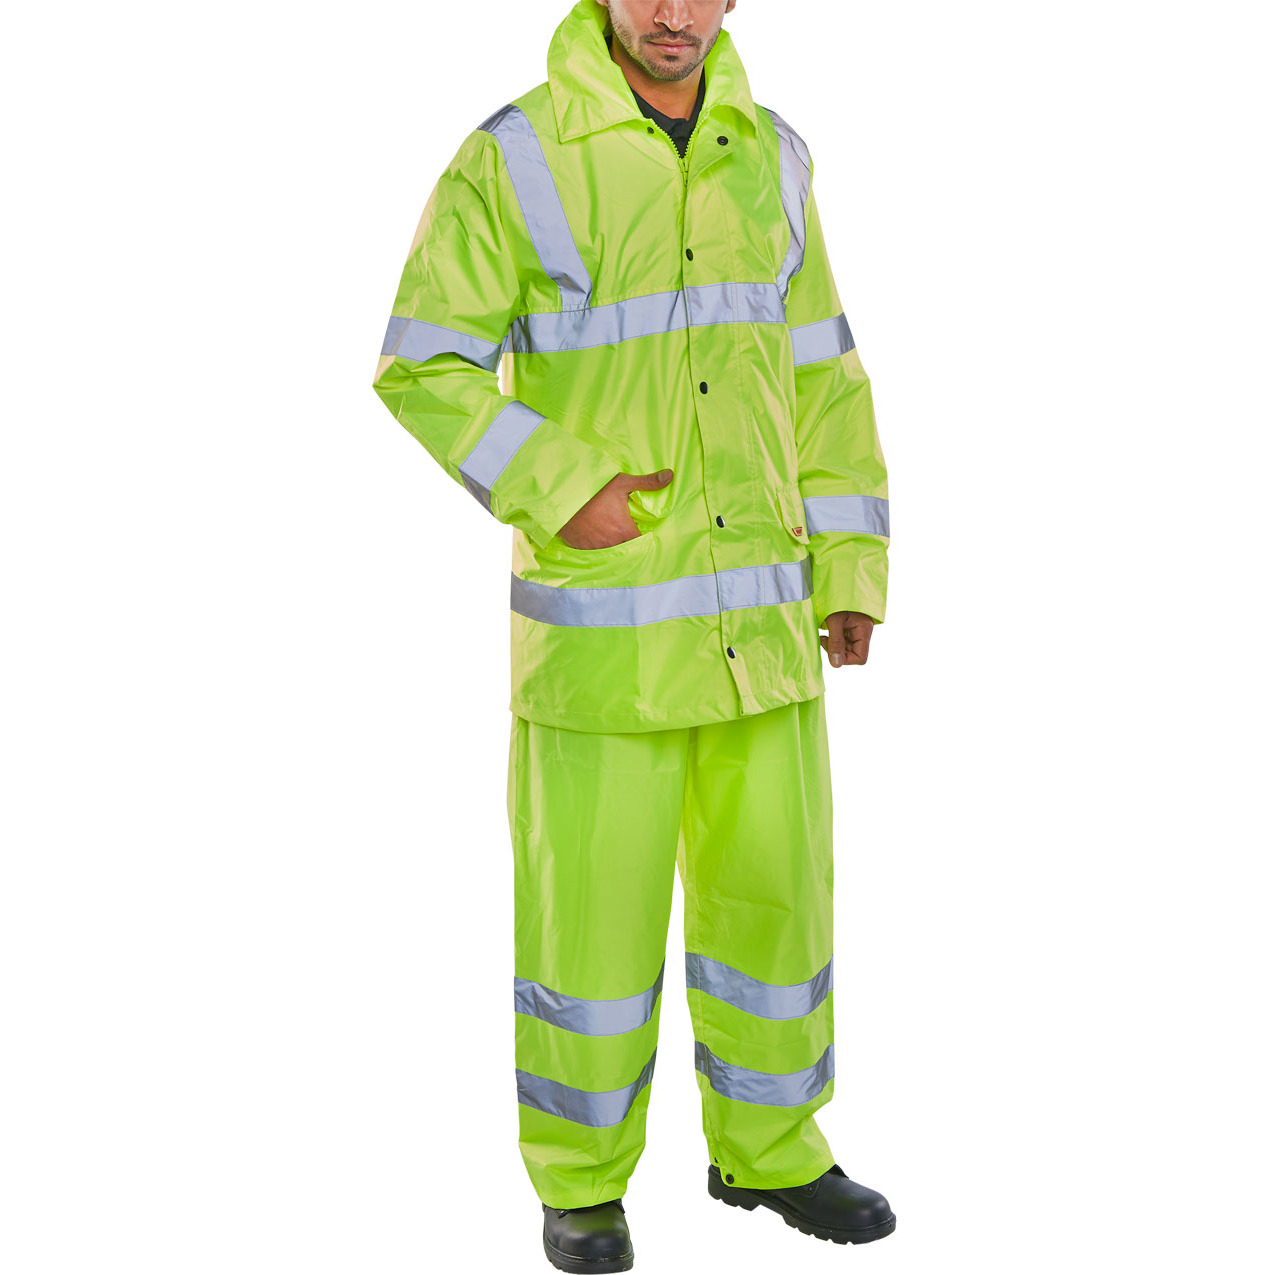 Bodywarmers BSeen Hi-Vis L/Wt Suit Jkt/Trs EN ISO 20471 EN 343 Medium Saturn Yellow Ref TS8SYM *Up to 3 Day Leadtime*